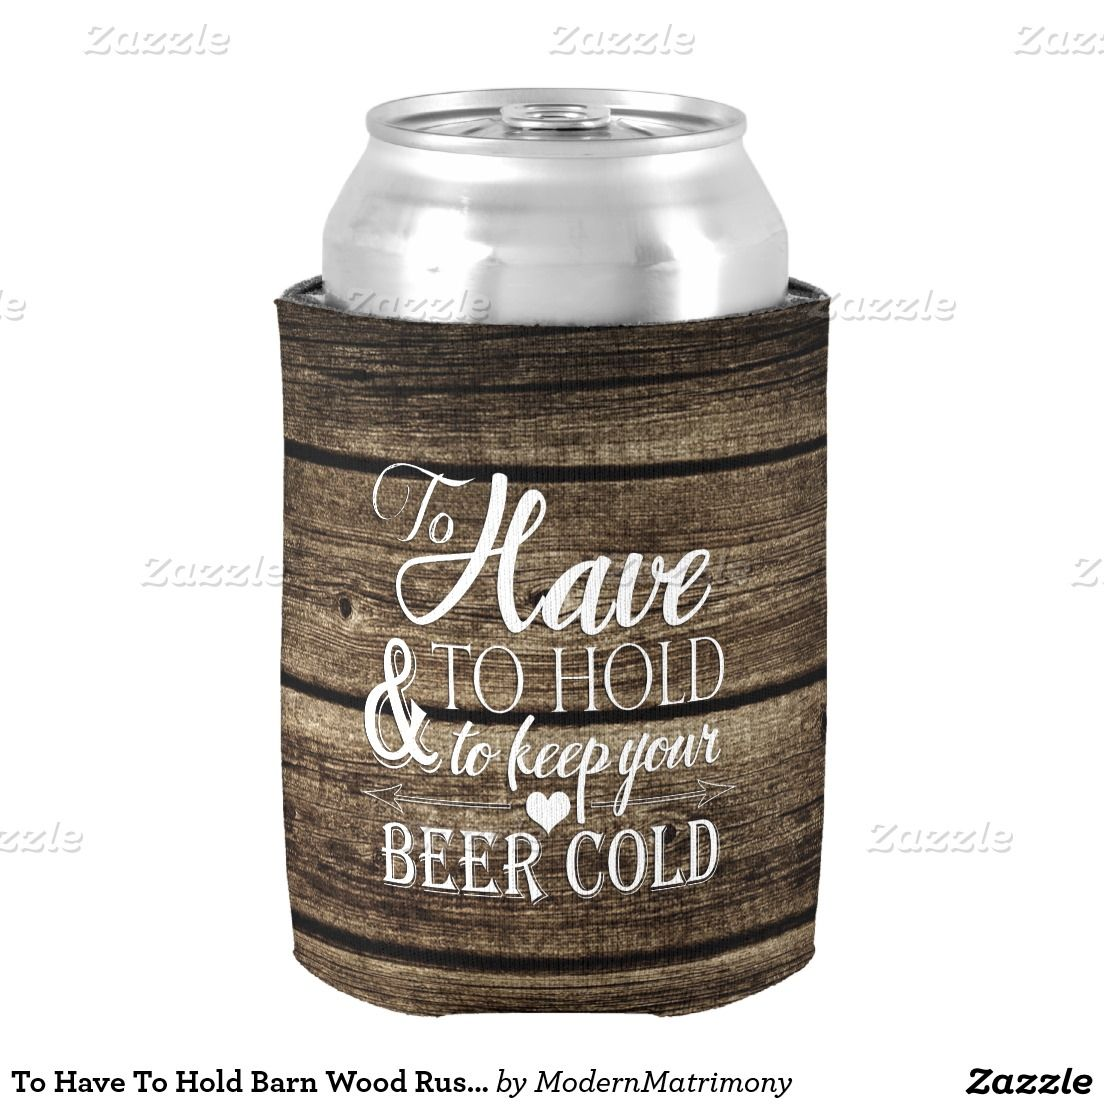 To Have Hold Barn Wood Rustic Wedding Koozie Can Cooler This Custom Beer Features The Phrase And Keep Your